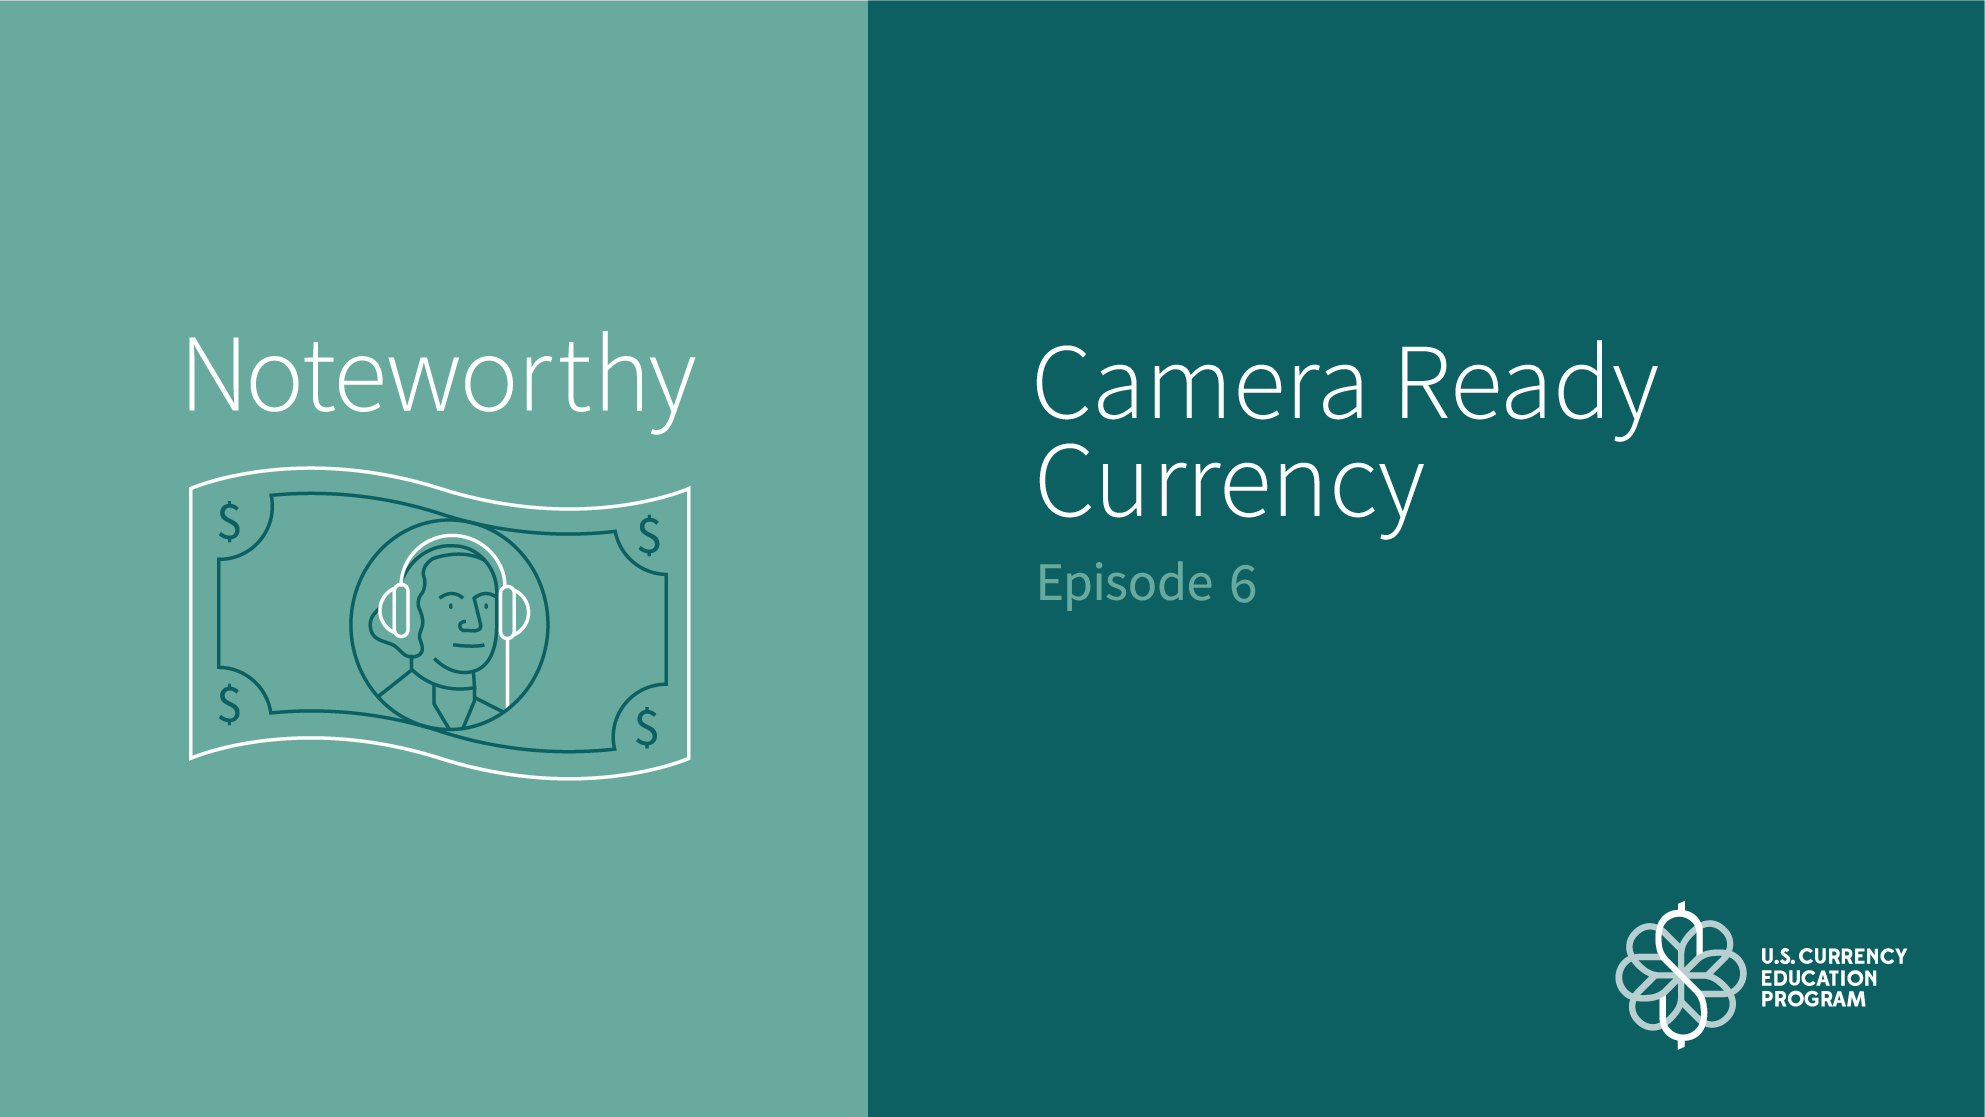 Camera Ready Currency